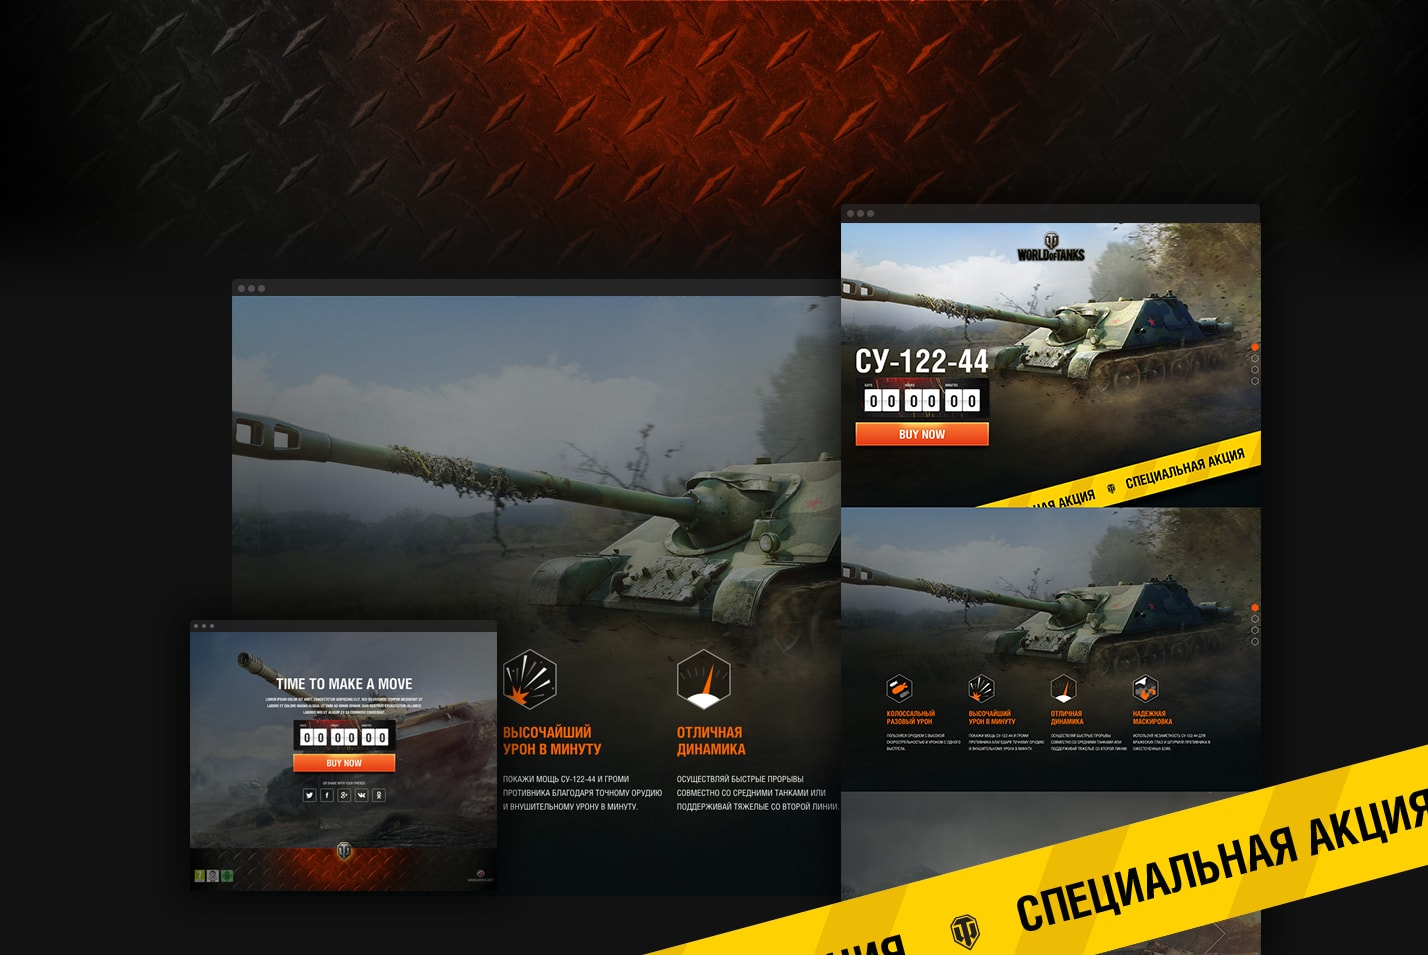 Promotional webpage for premium vehicles in World of Tanks